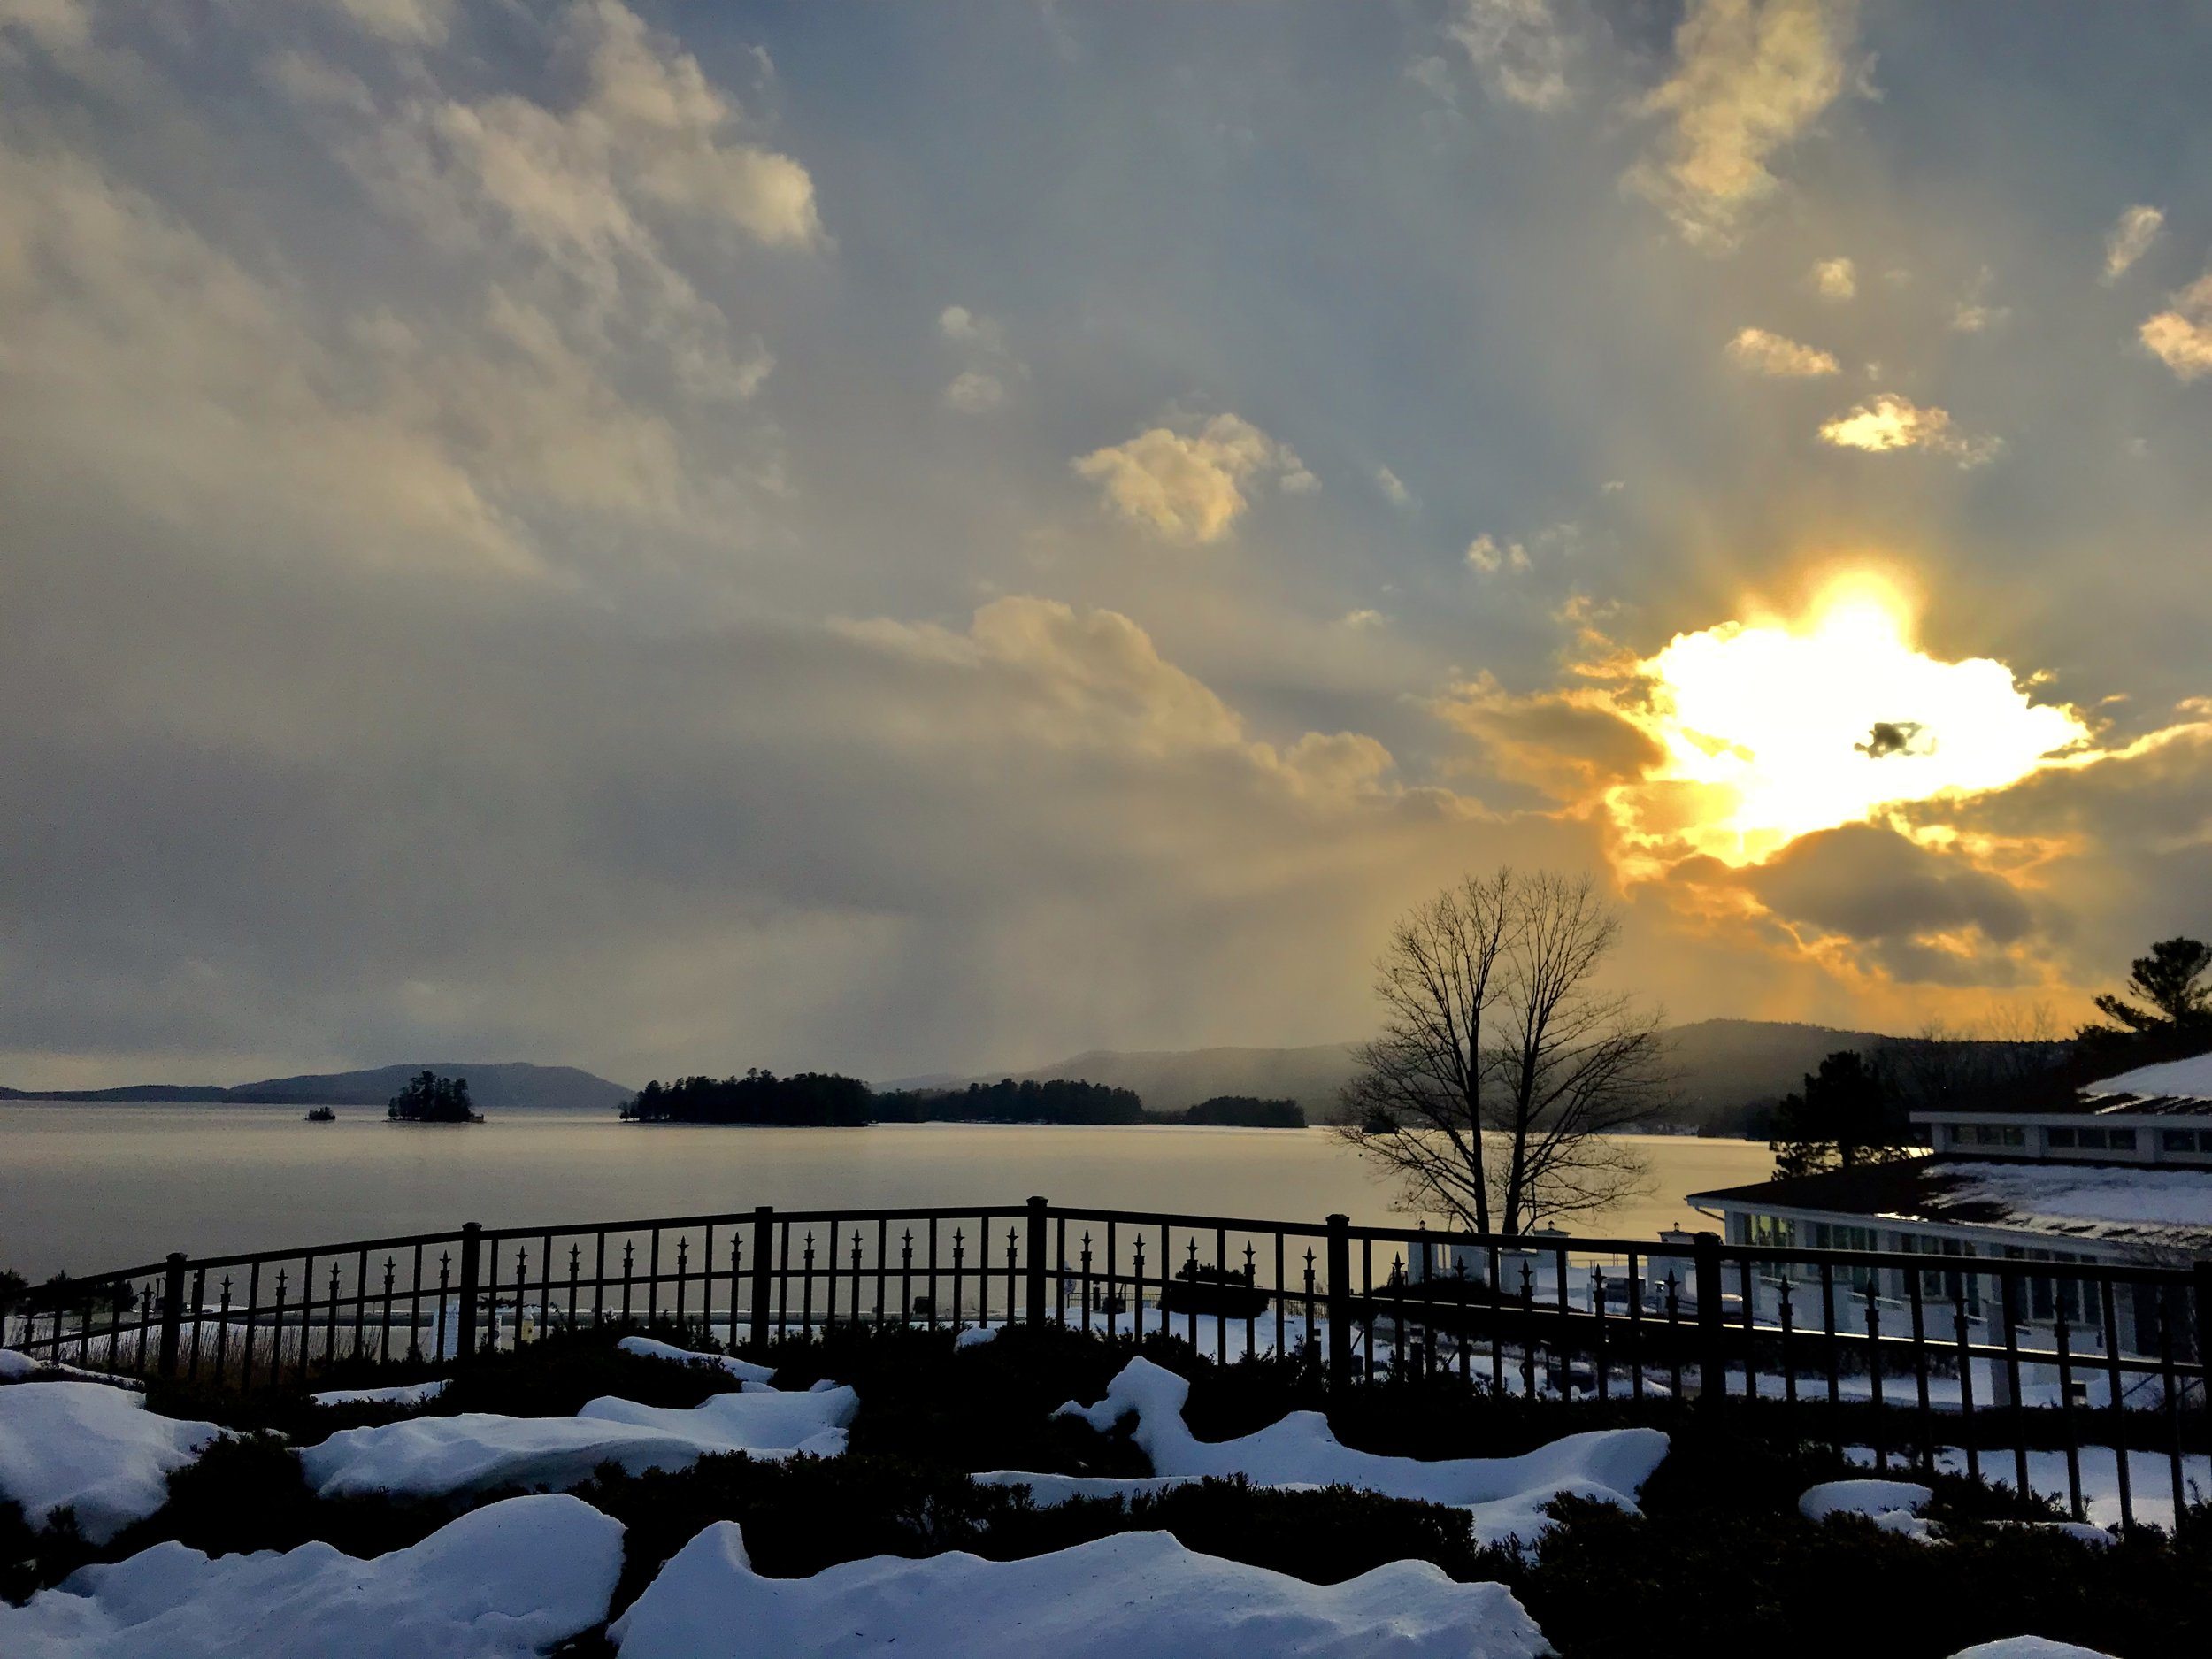 Sunset view of Lake George, as seen from the s'mores patio at The Sagamore. c. January 2019